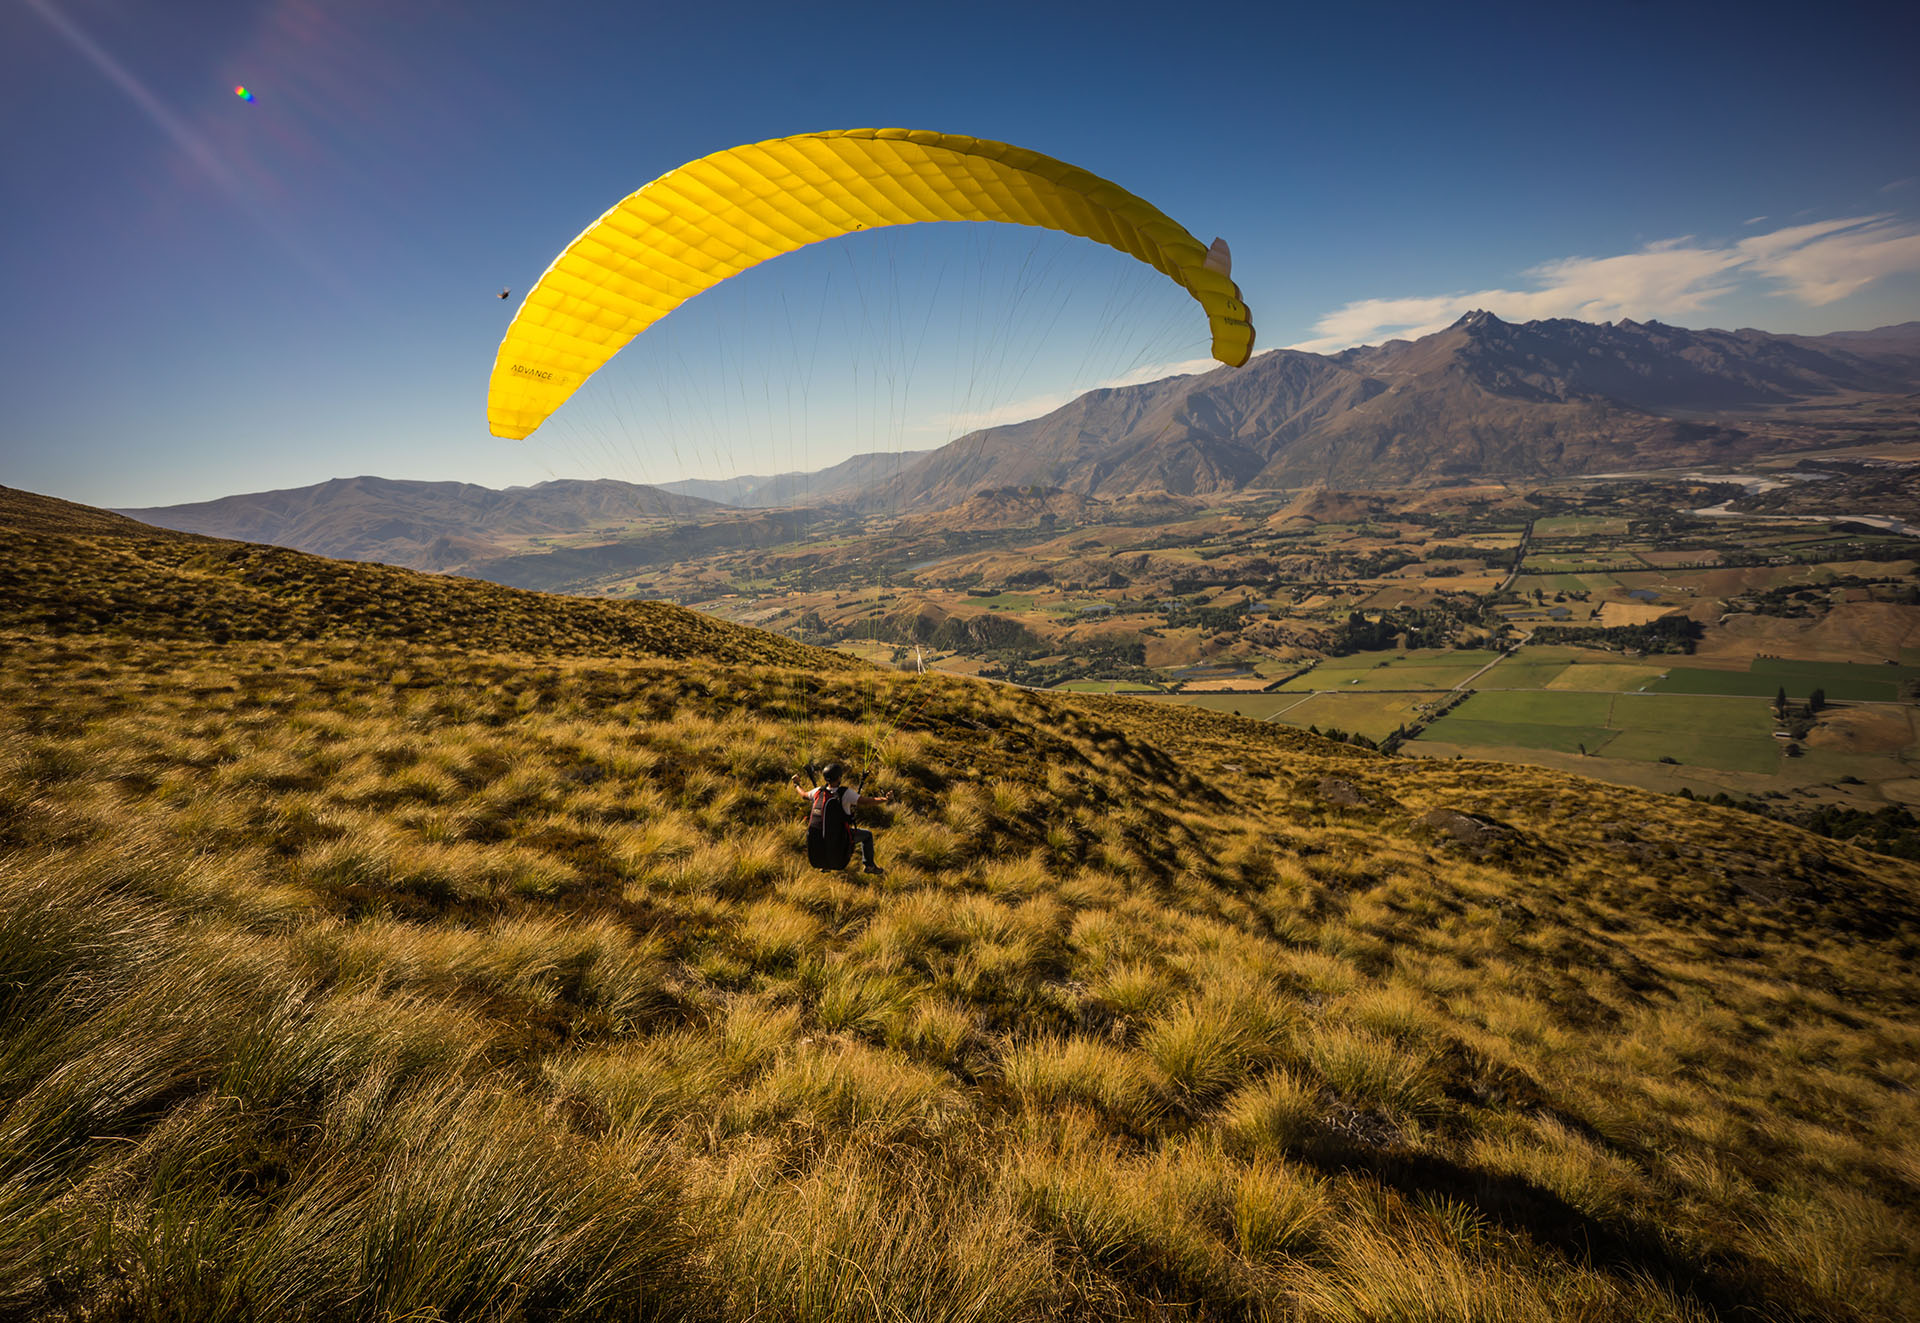 _0012_infinity-paragliding-learning-at-coronet